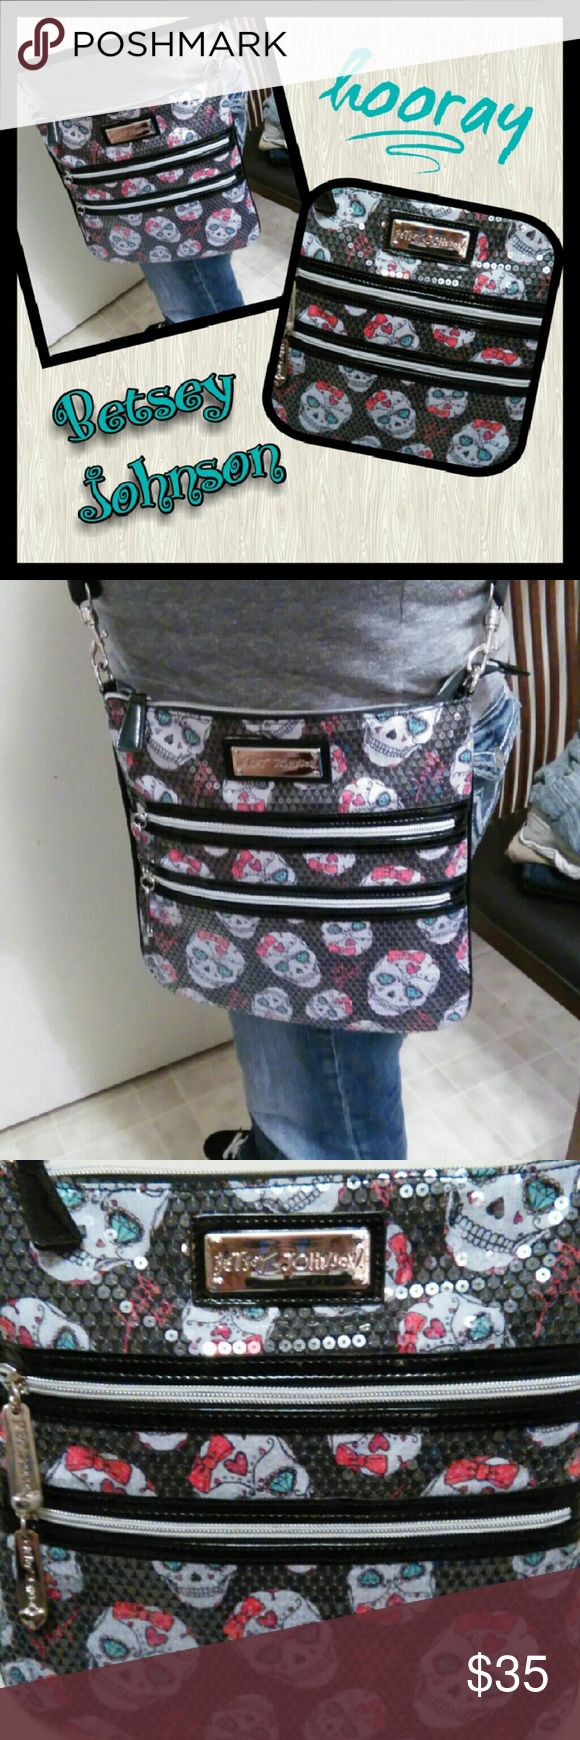 👜THURSDAY SPECIAL👛 Beautiful Betsey Johnson If your a skull lover this is a must have!  Sequins is a special look that makes the bag pop! Adjustable strap as we'll.... Like new... Smoke free home.... Betsey Johnson Bags Crossbody Bags